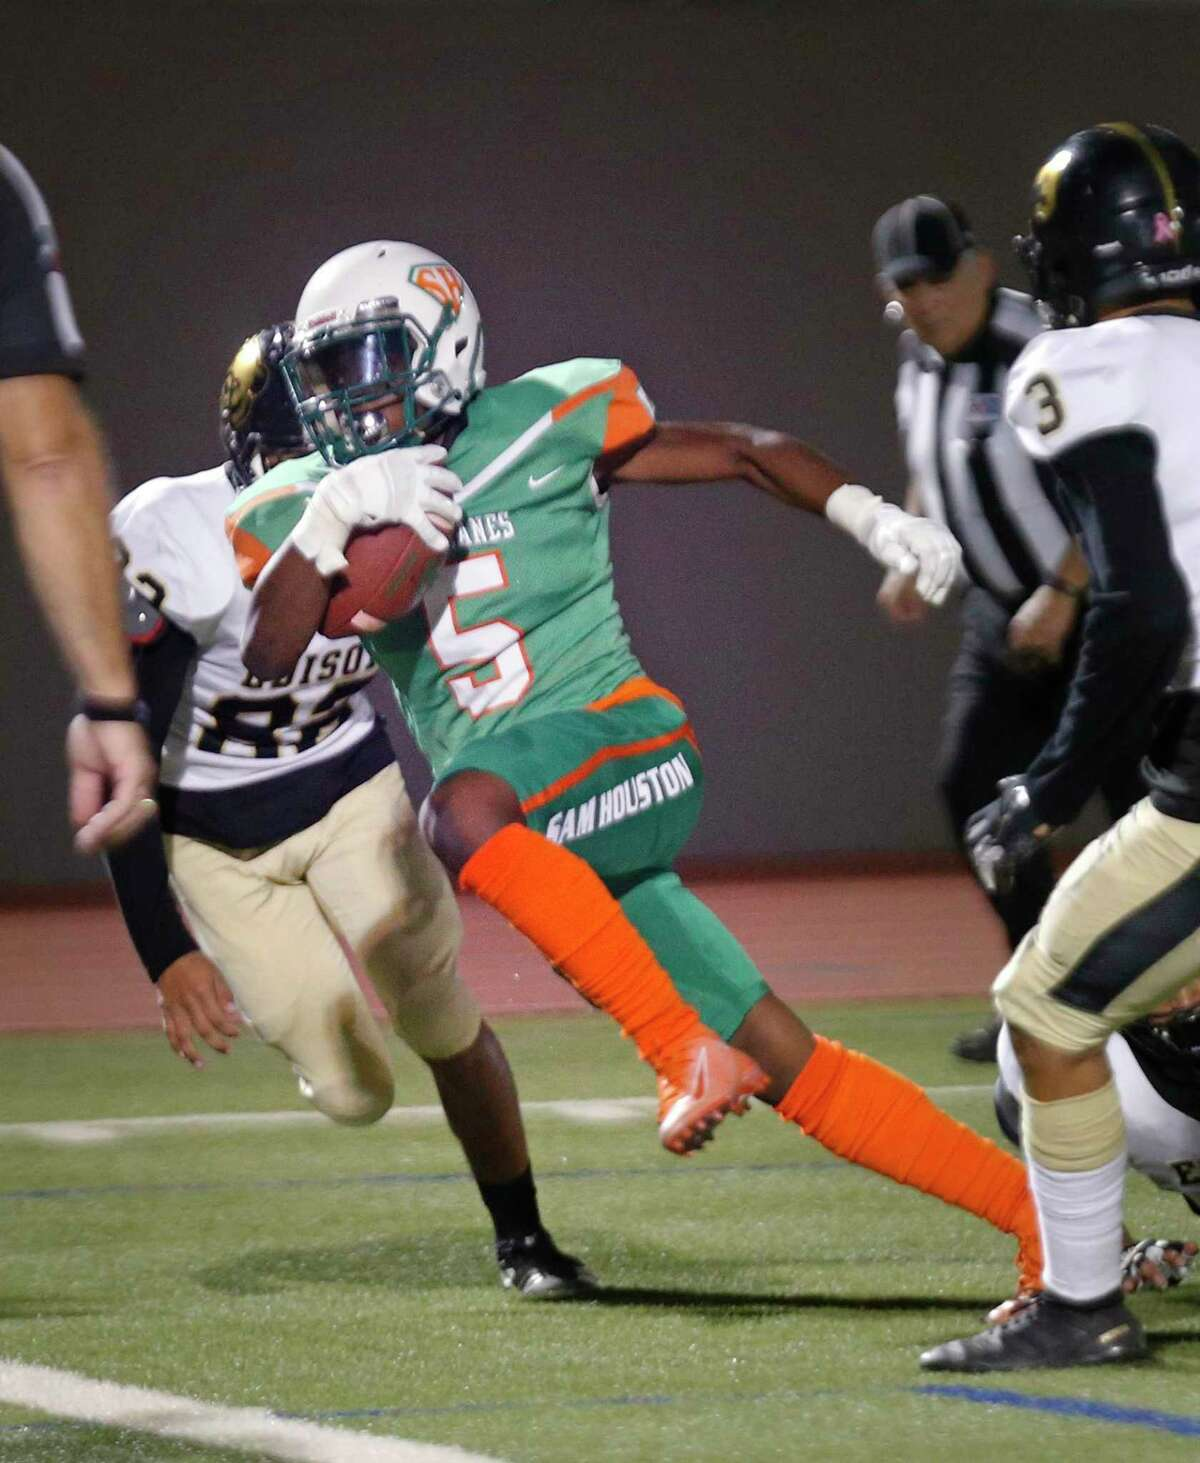 Sam Houston running back Faiszon Reese scores a touchdown in the first half of a 5A-1 Region IV District 13 football game between Sam Houston and Edison at Alamo Stadium on October 3, 2019.